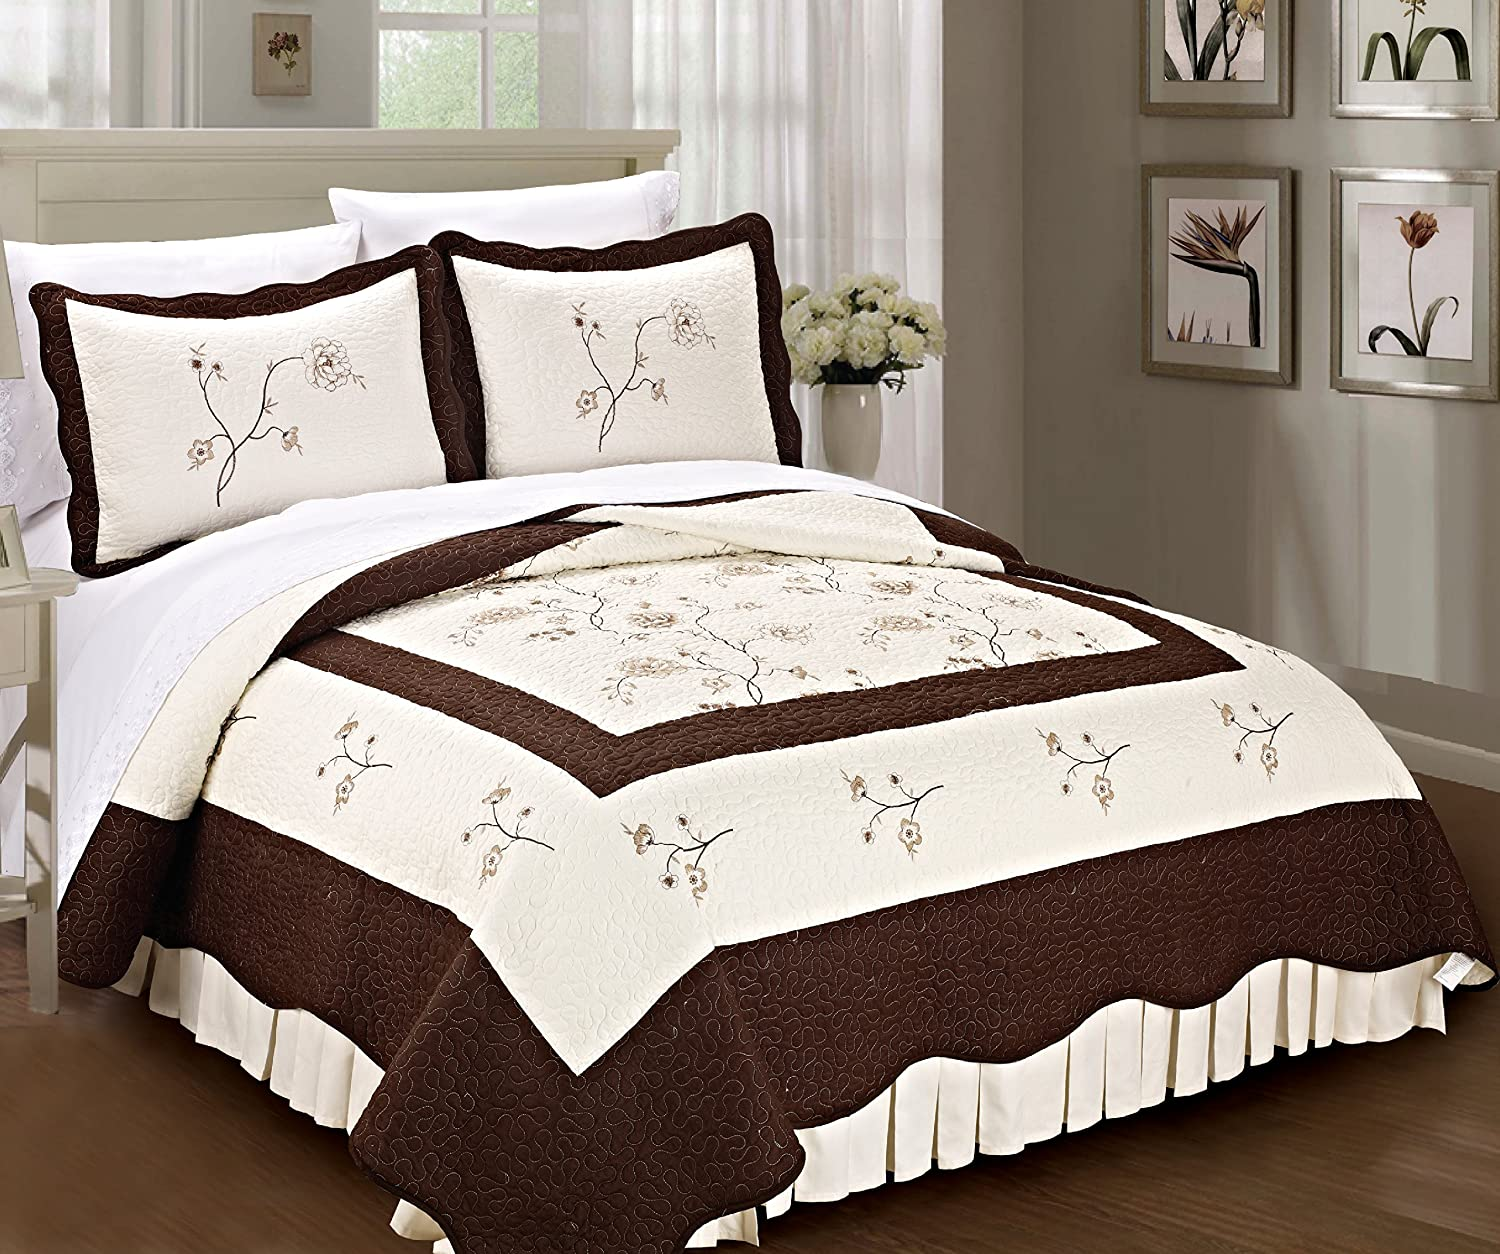 Beautiful Bedding Sets Free Shipping Luxury Snow White Lace Beautiful Bedding Home Design